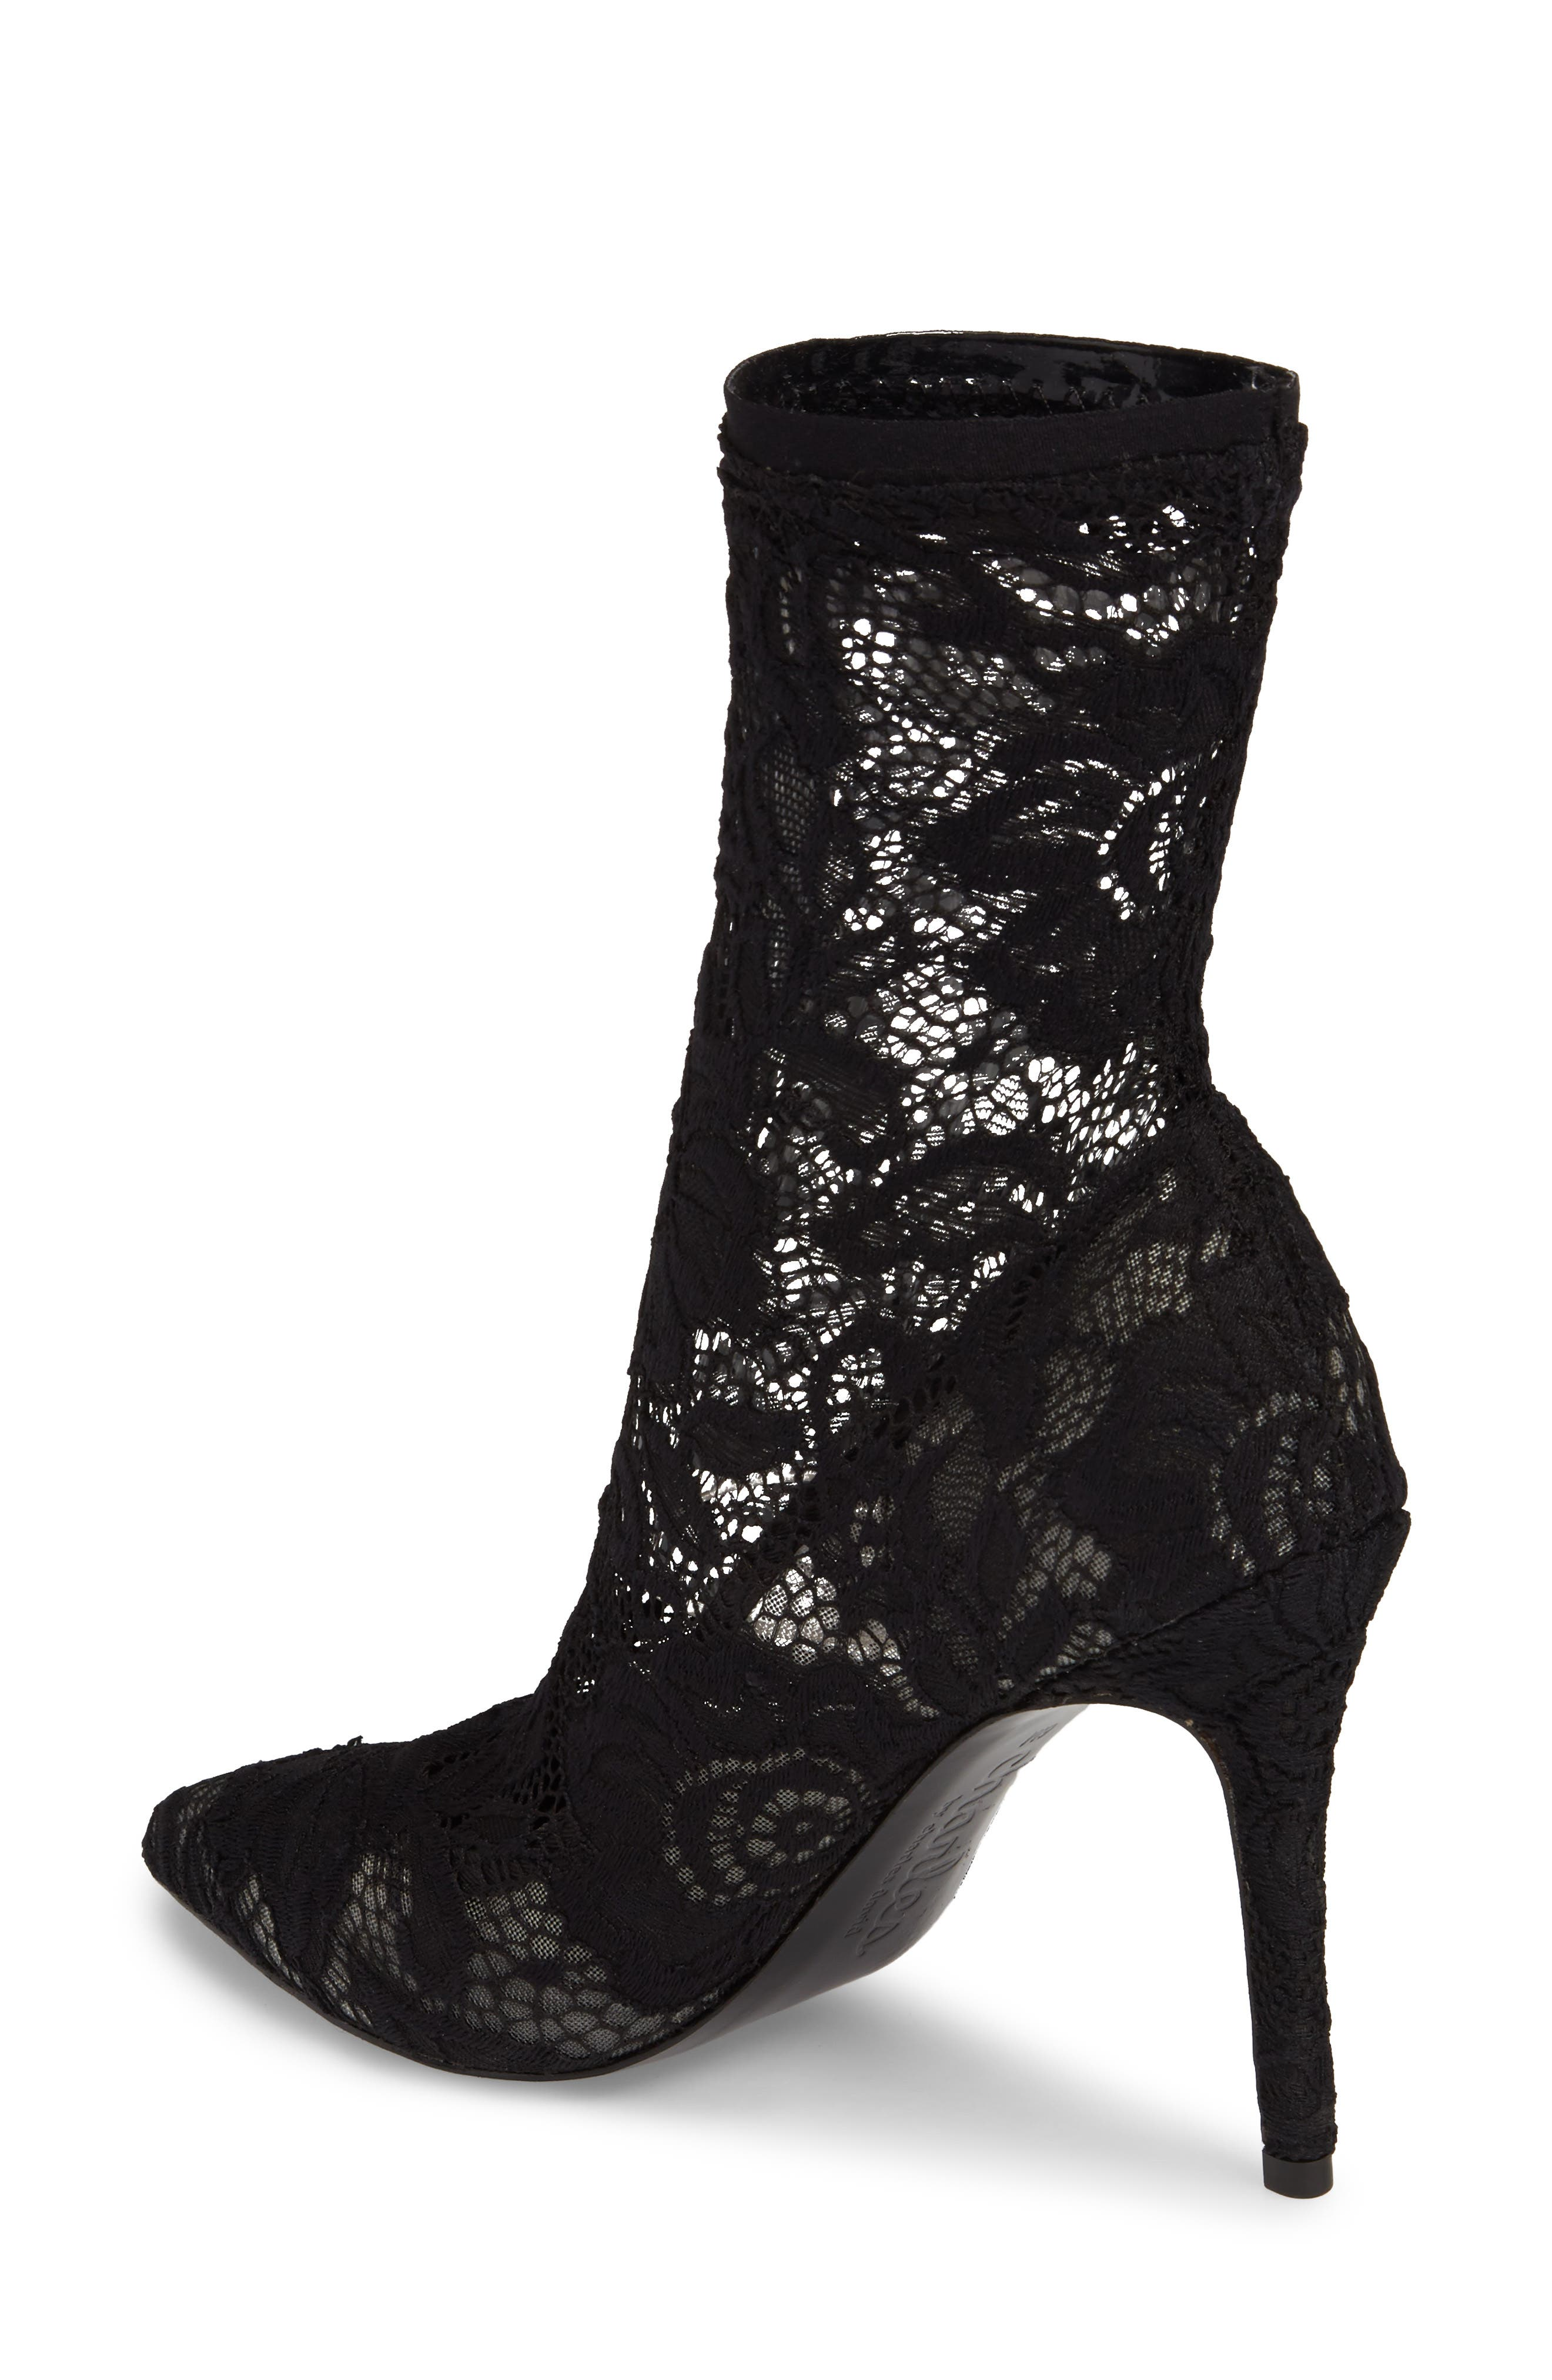 Player Sock Bootie,                             Alternate thumbnail 2, color,                             001